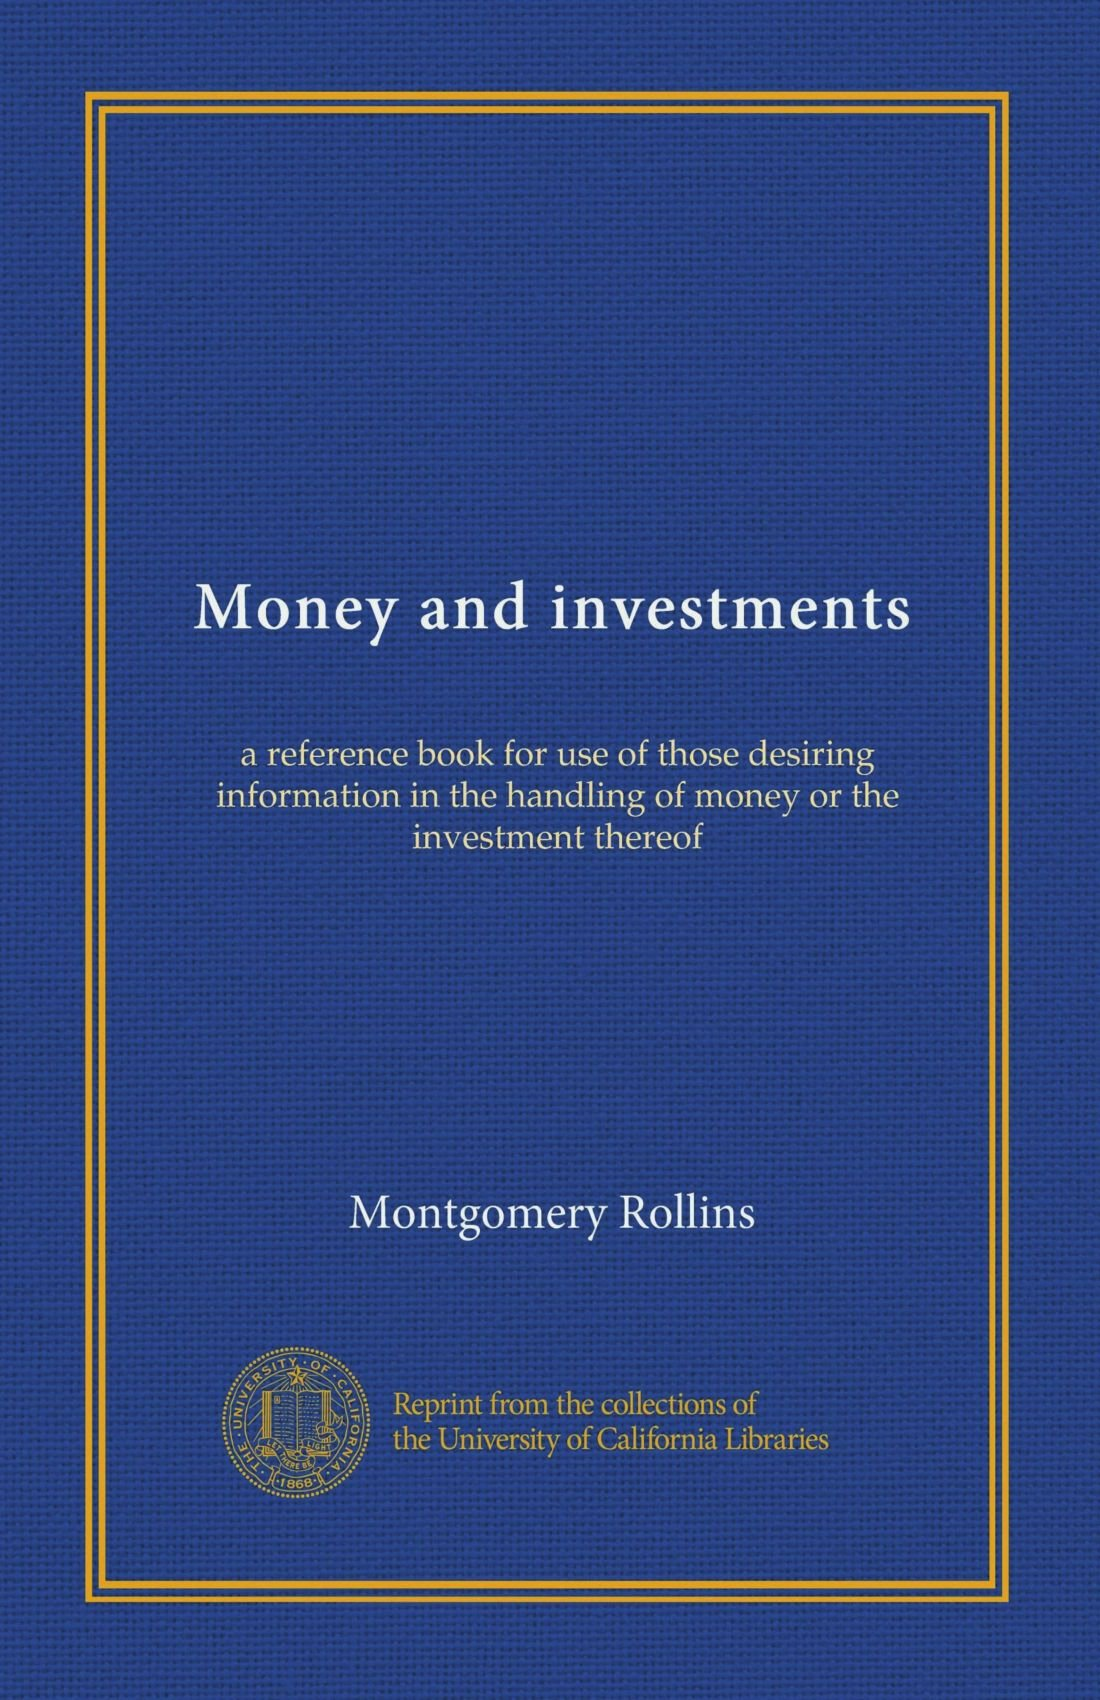 Read Online Money and investments: a reference book for use of those desiring information in the handling of money or the investment thereof ebook